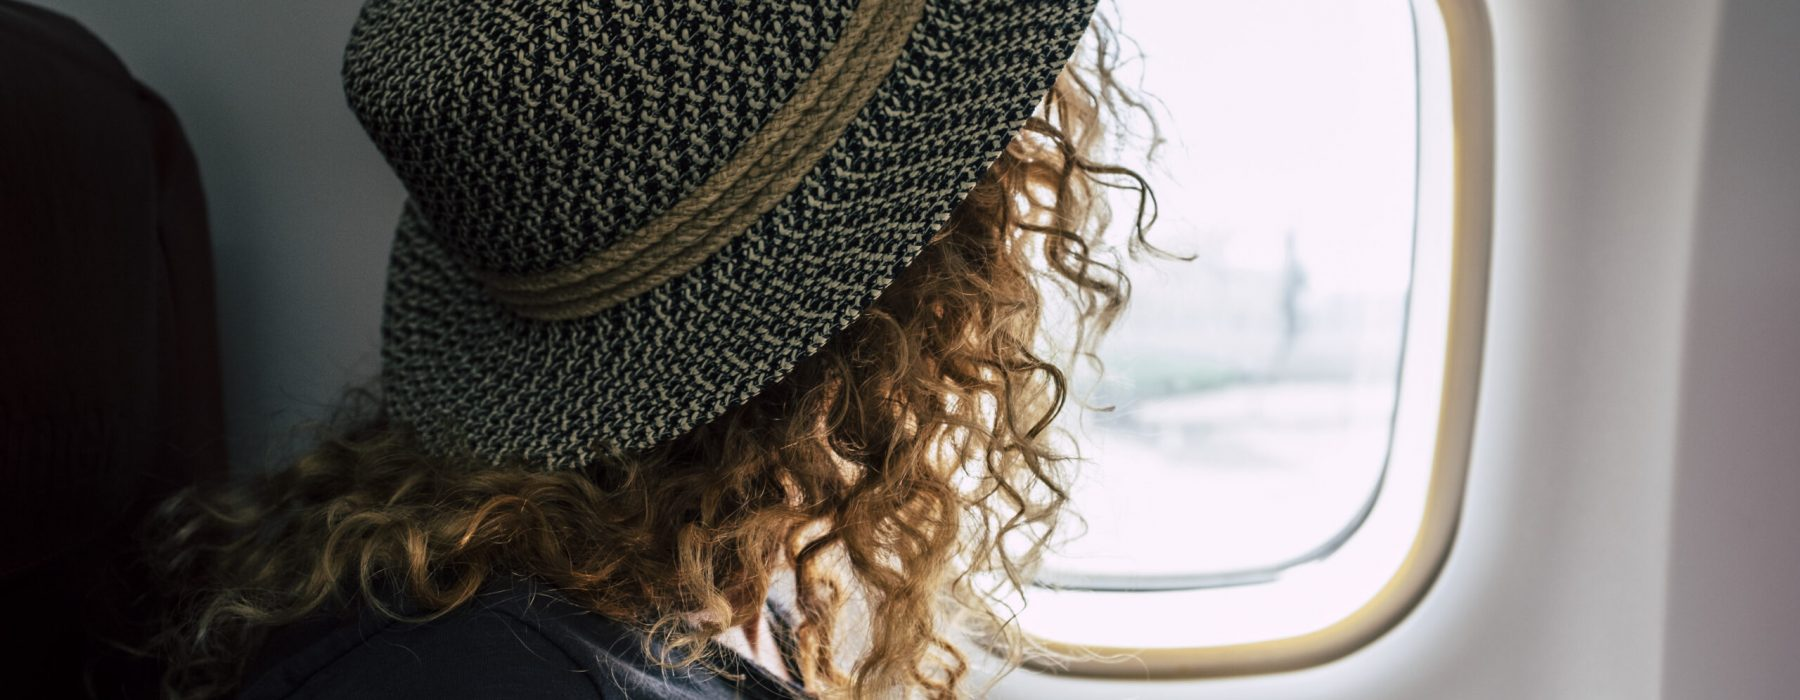 Woman travel on aircraft flight - fly for business or holiday vacation people inside airplane looking outside from the window - concept of transport and freedom